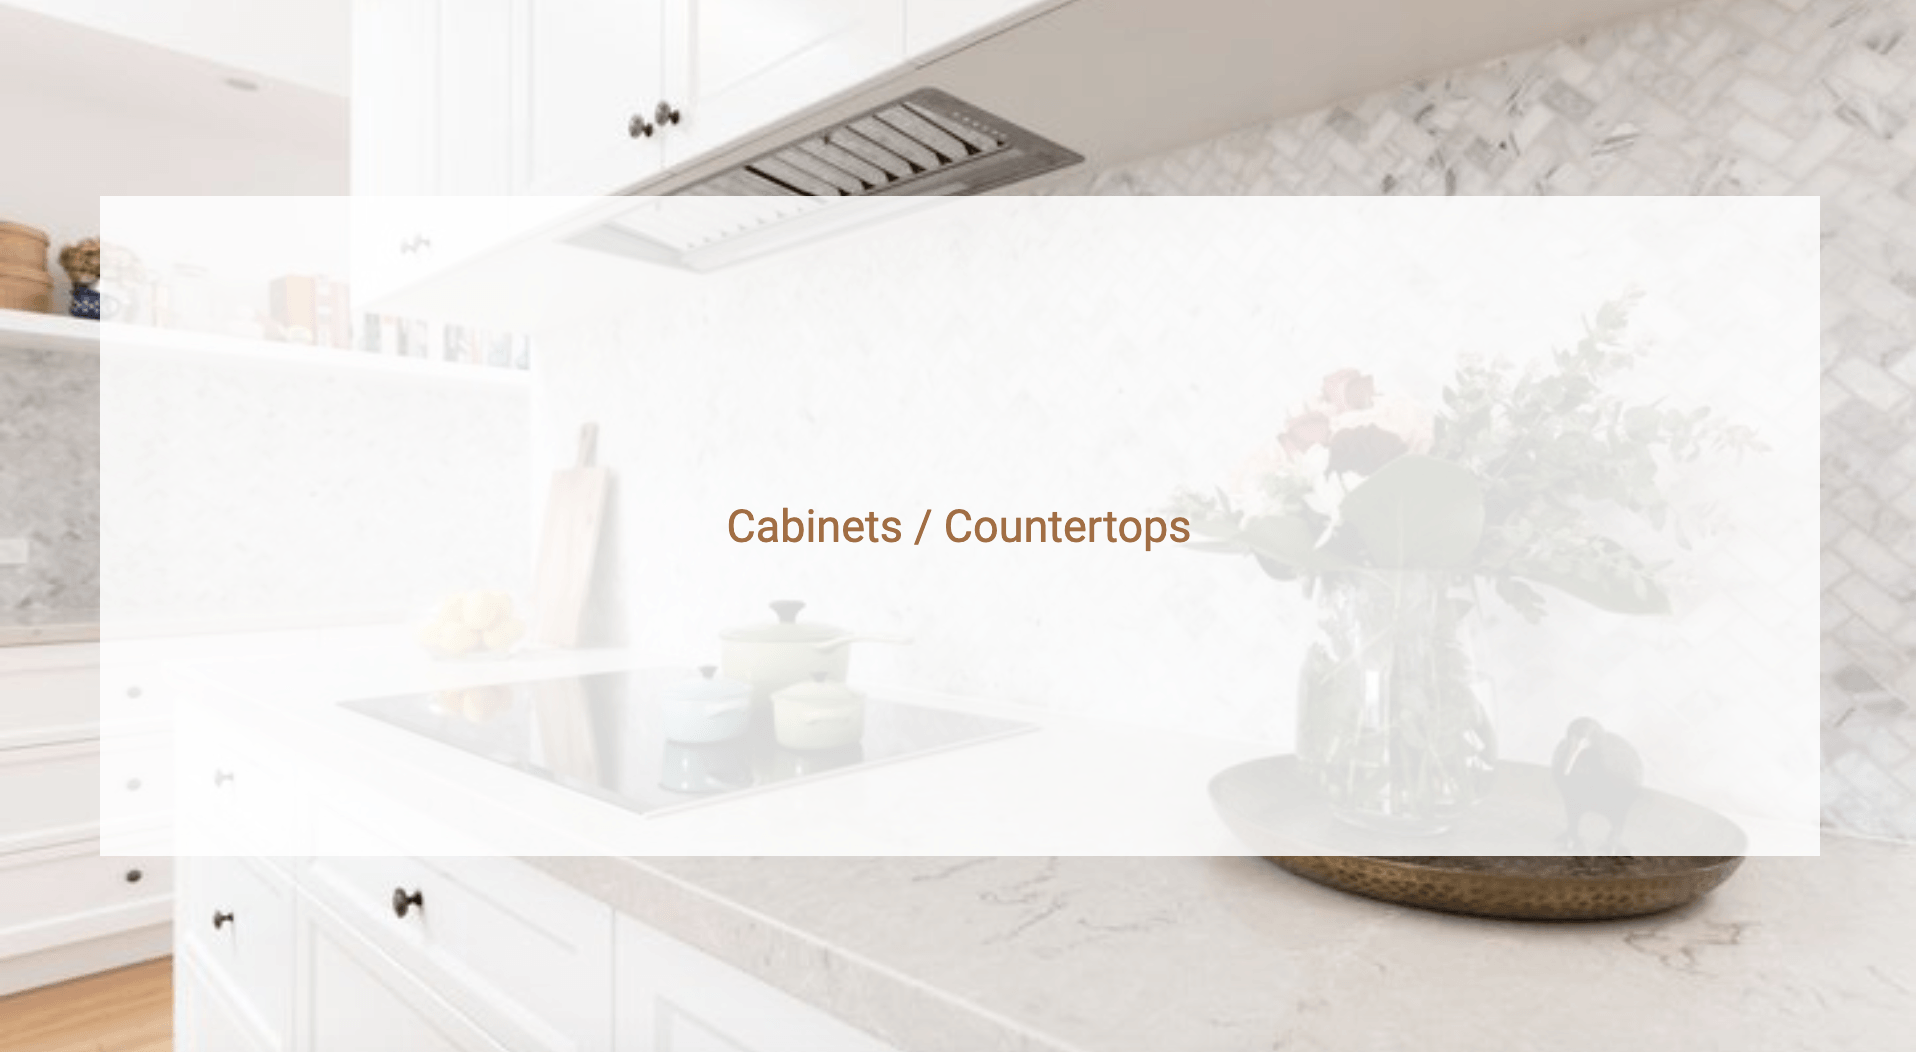 Cabinets / Countertops with image of white cabinets and countertop in the background